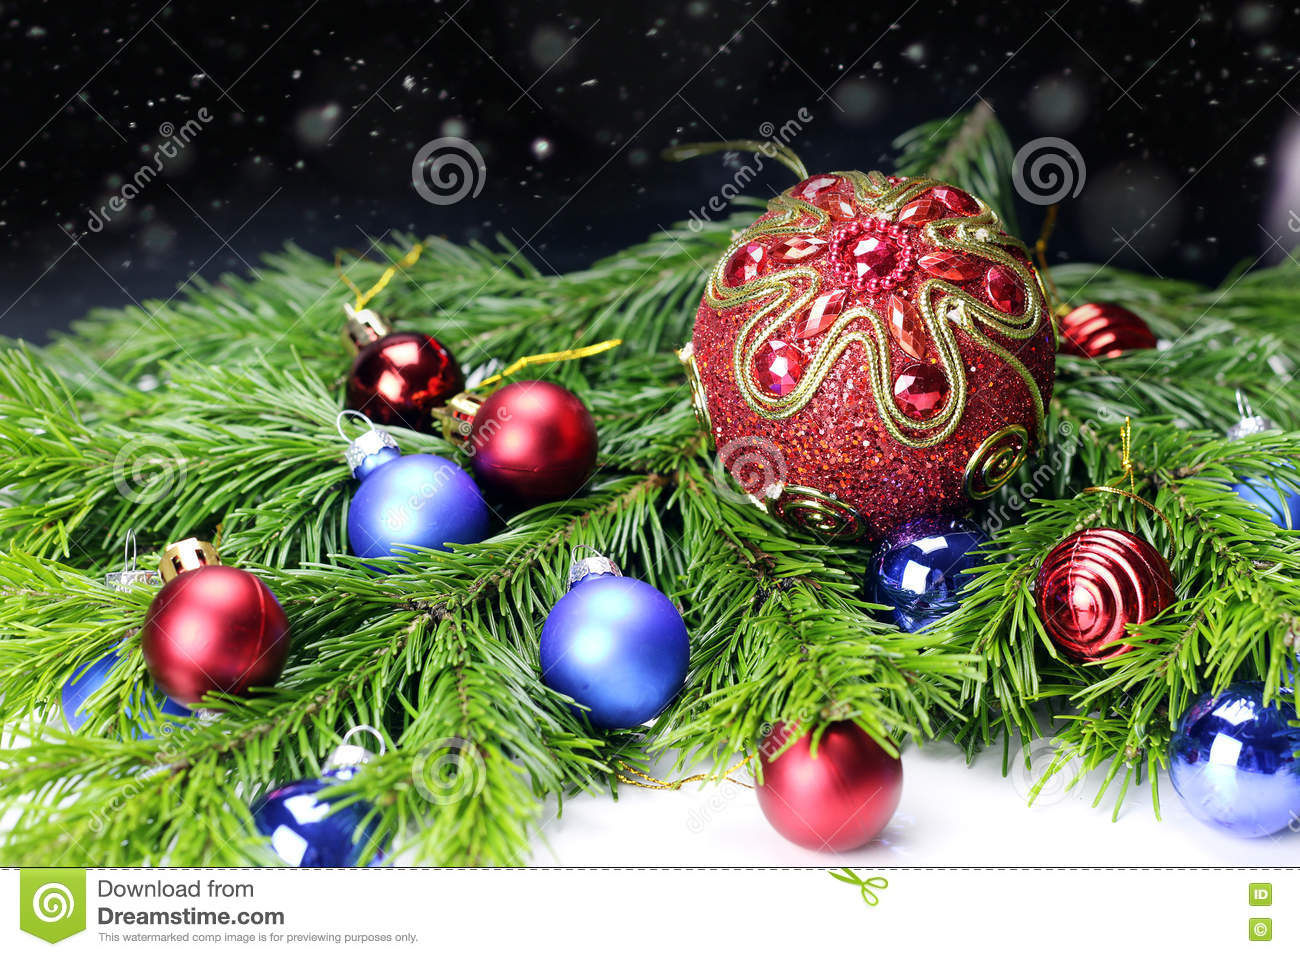 New Year Tree Toy Ball Background Stock Image - Image of present ...